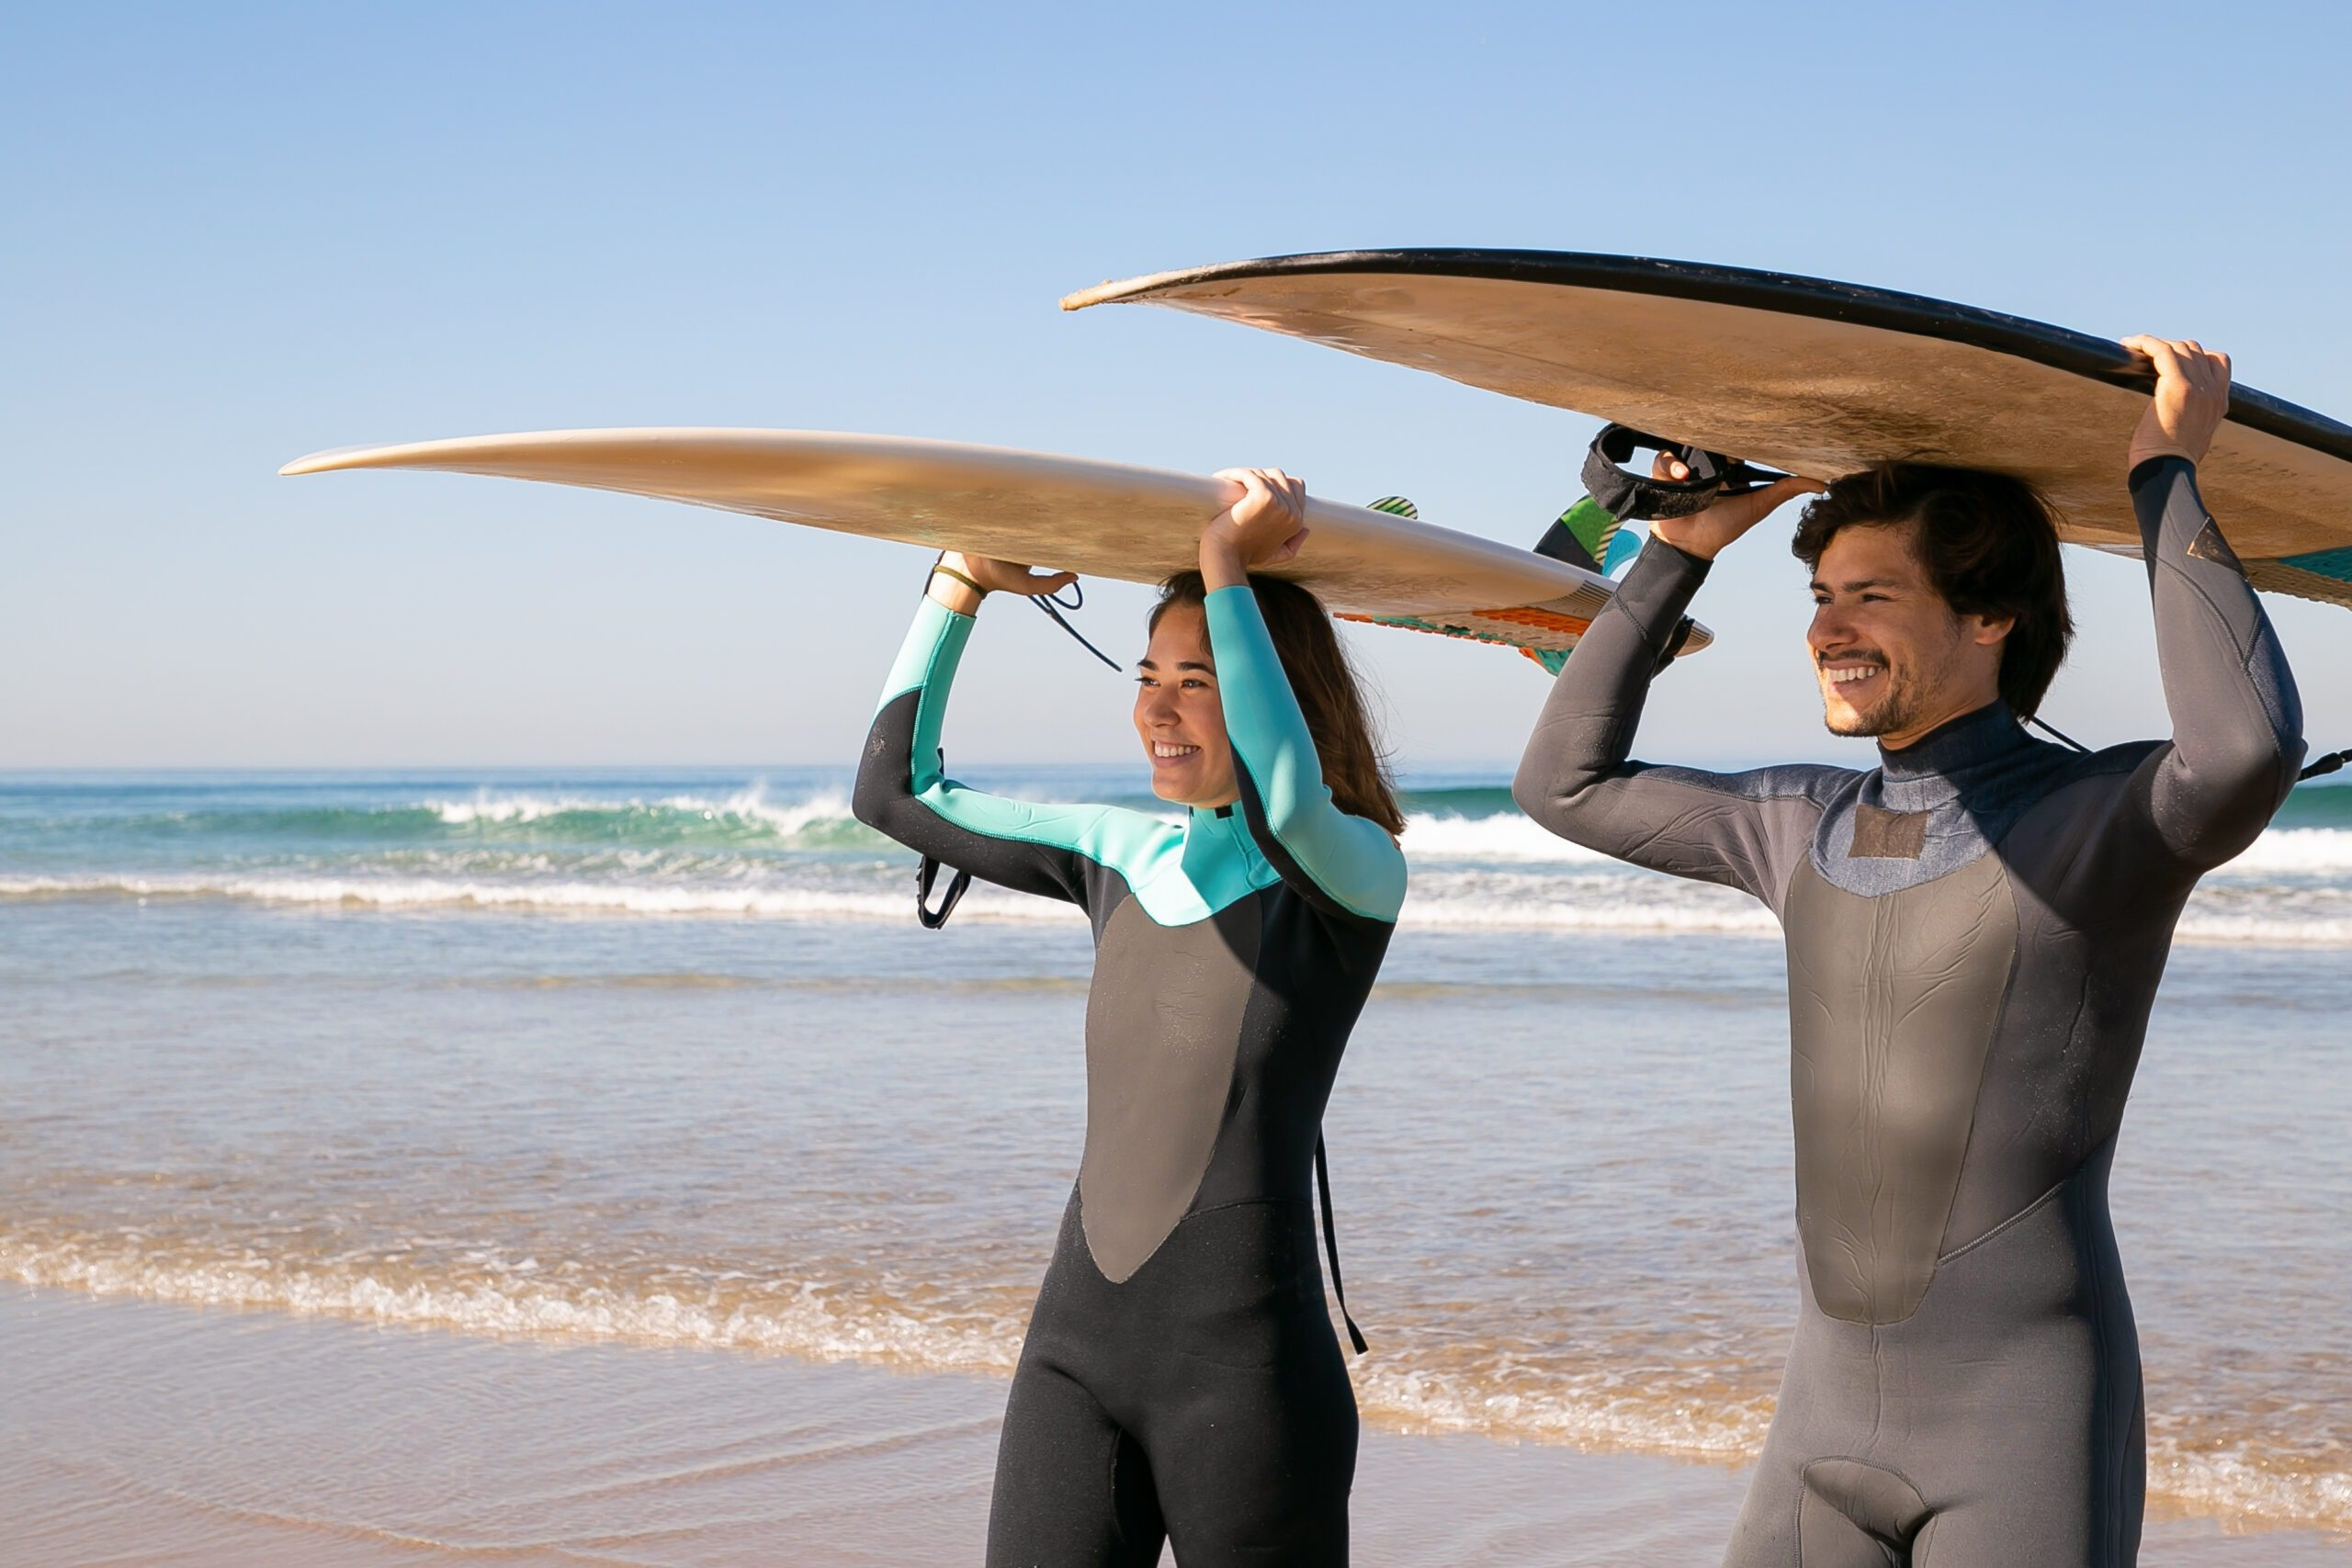 You are currently viewing Want To Take Up a New Hobby? You Might Want to Try Surfing